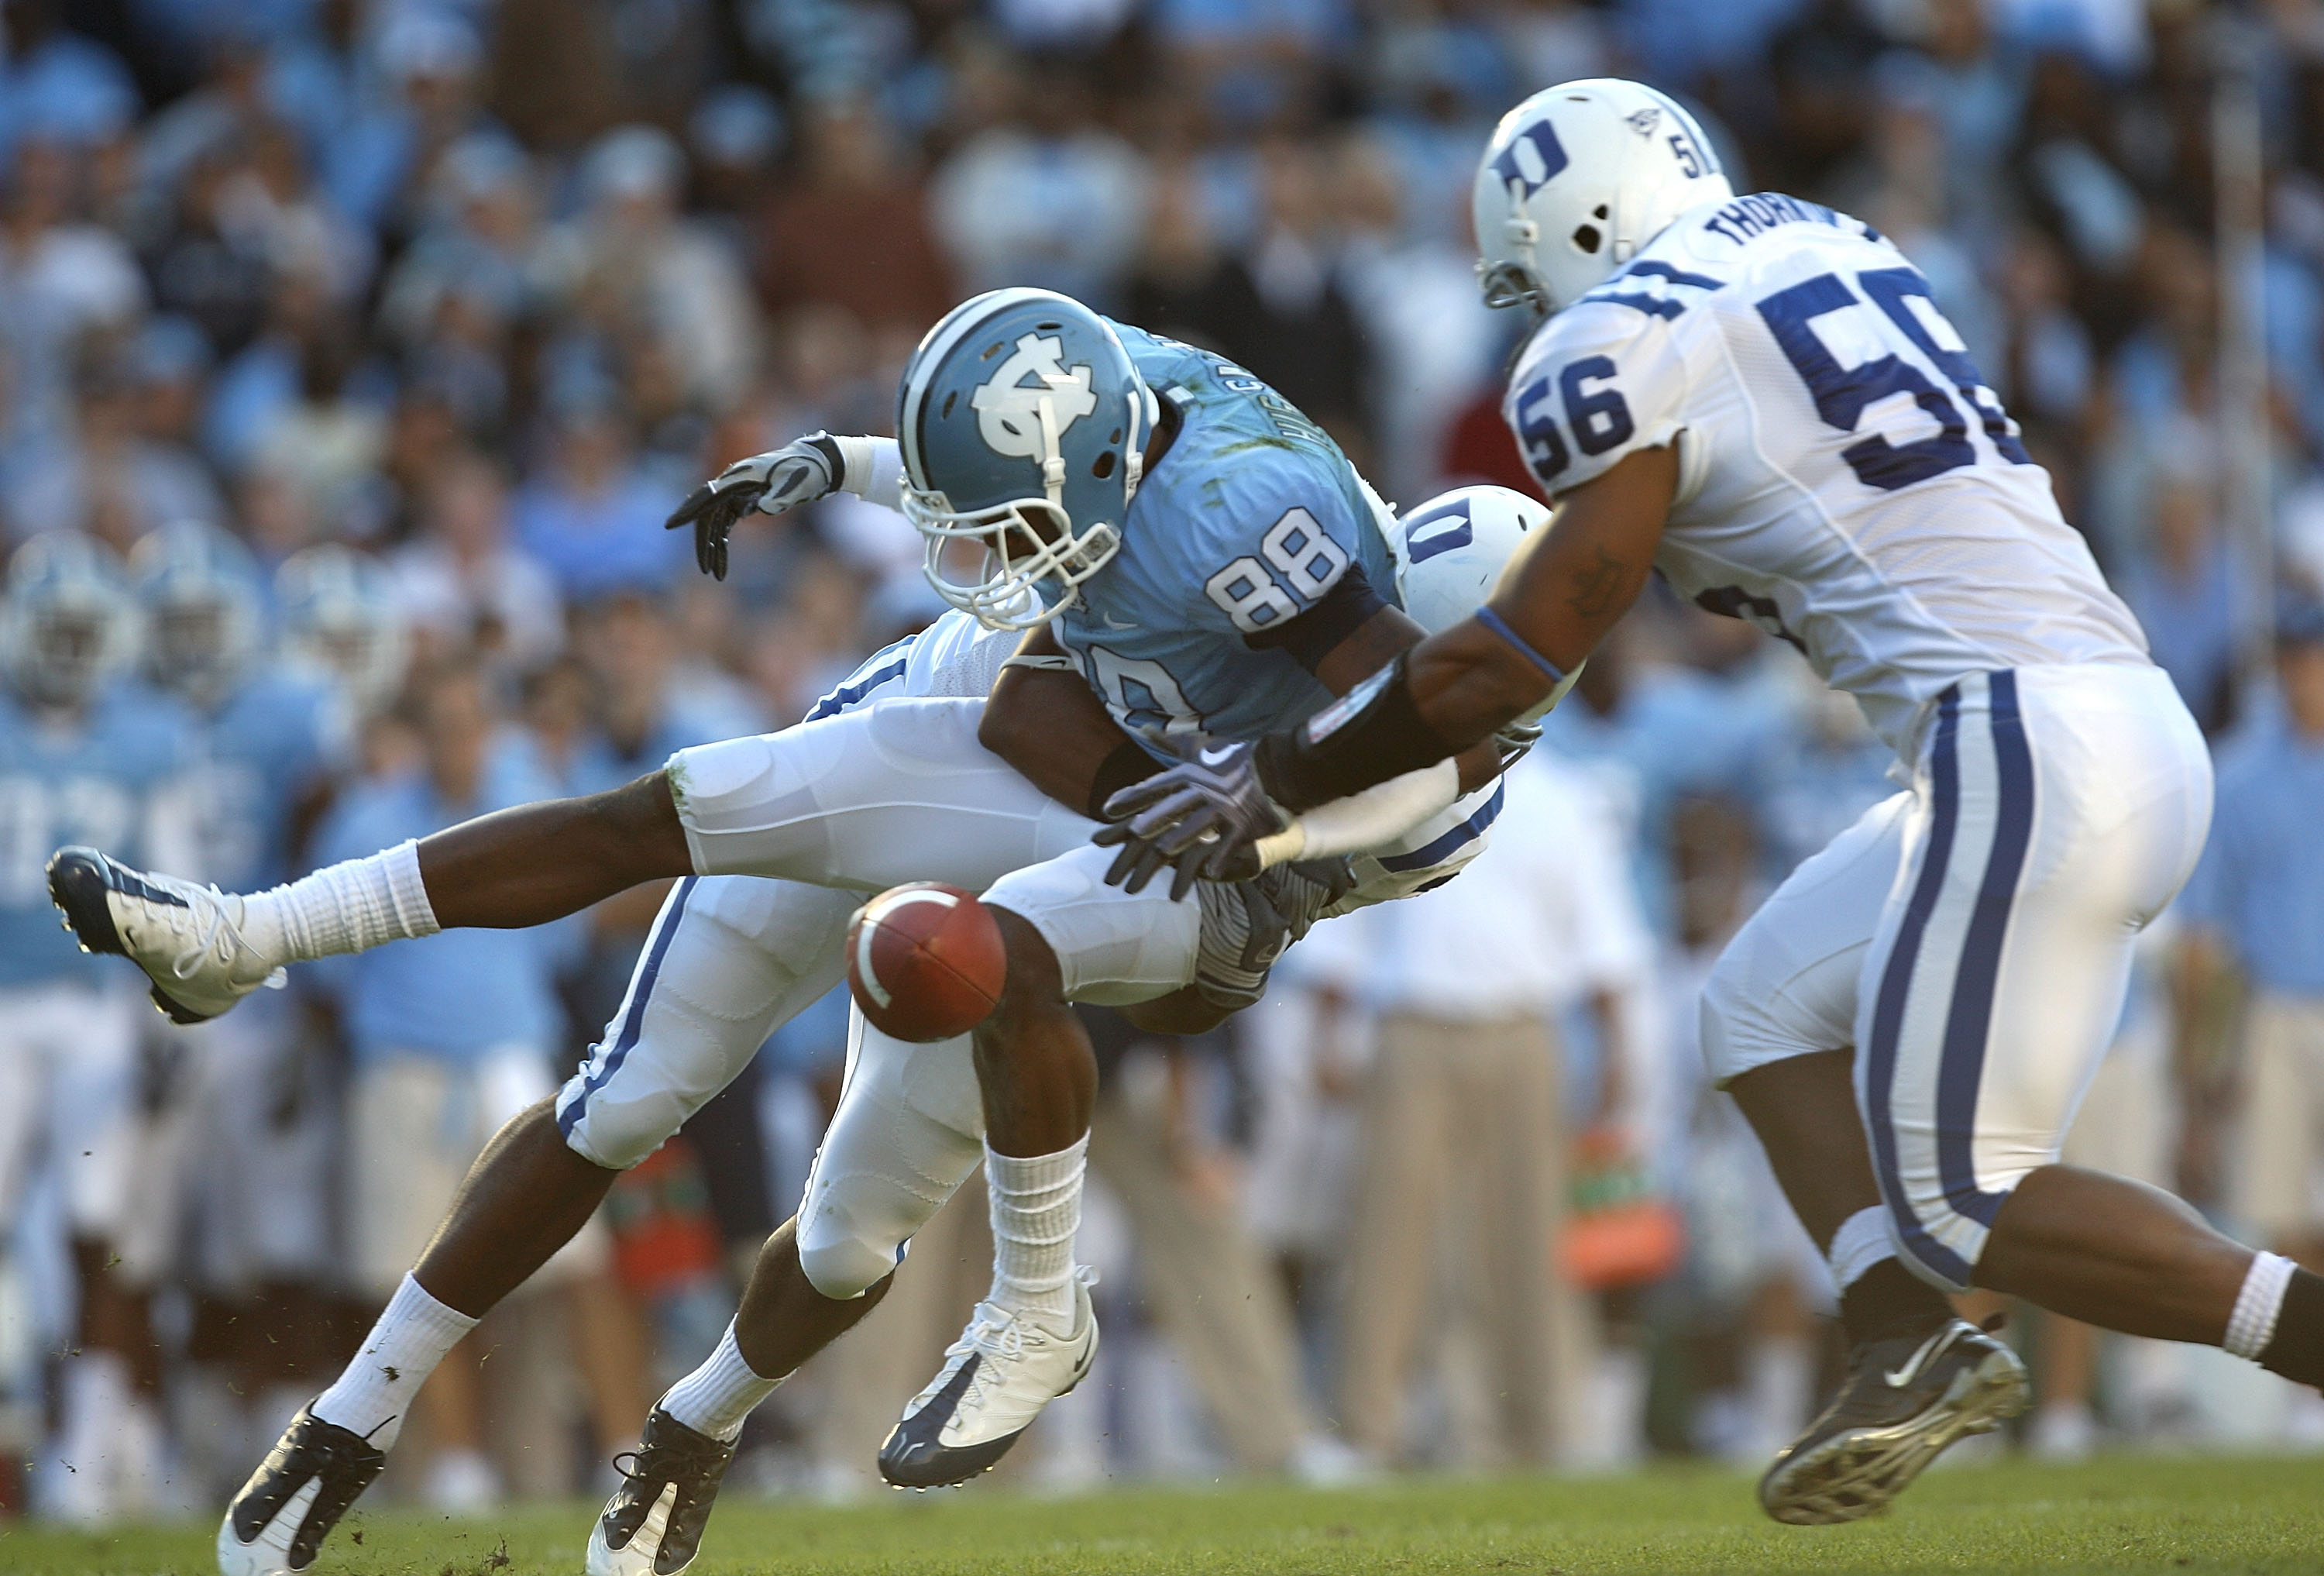 CHAPEL HILL, NC - NOVEMBER 07:  Damian Thornton #56 of the Duke Blue Devils goes after a dropped ball by Erik Highsmith #88 of the North Carolina Tar Heels during their game at Kenan Stadium on November 7, 2009 in Chapel Hill, North Carolina.  (Photo by S